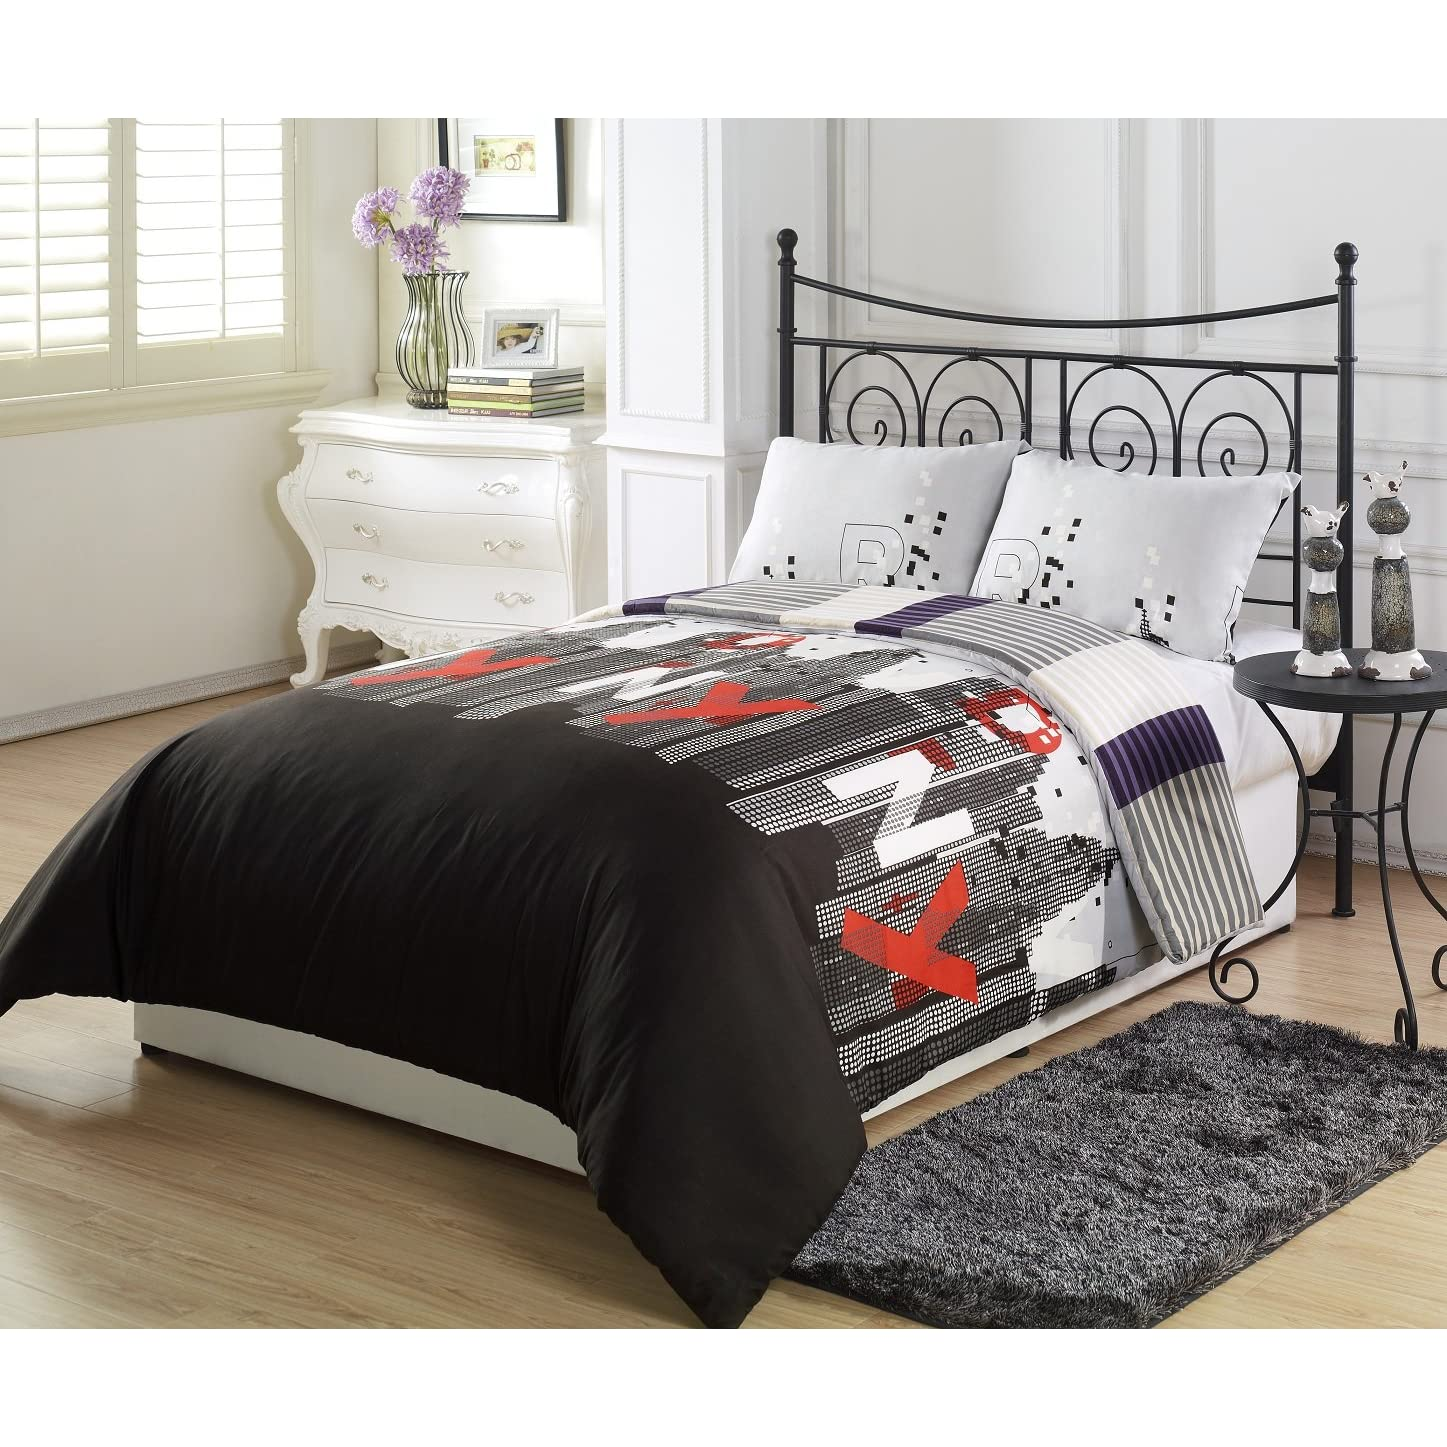 Nfl bedding for boys - Defining Your Nursery Style Is A Good Fist Action When Beginning The Road Of Infant Room Style Down A Look That S Presently Becoming Highly Popular